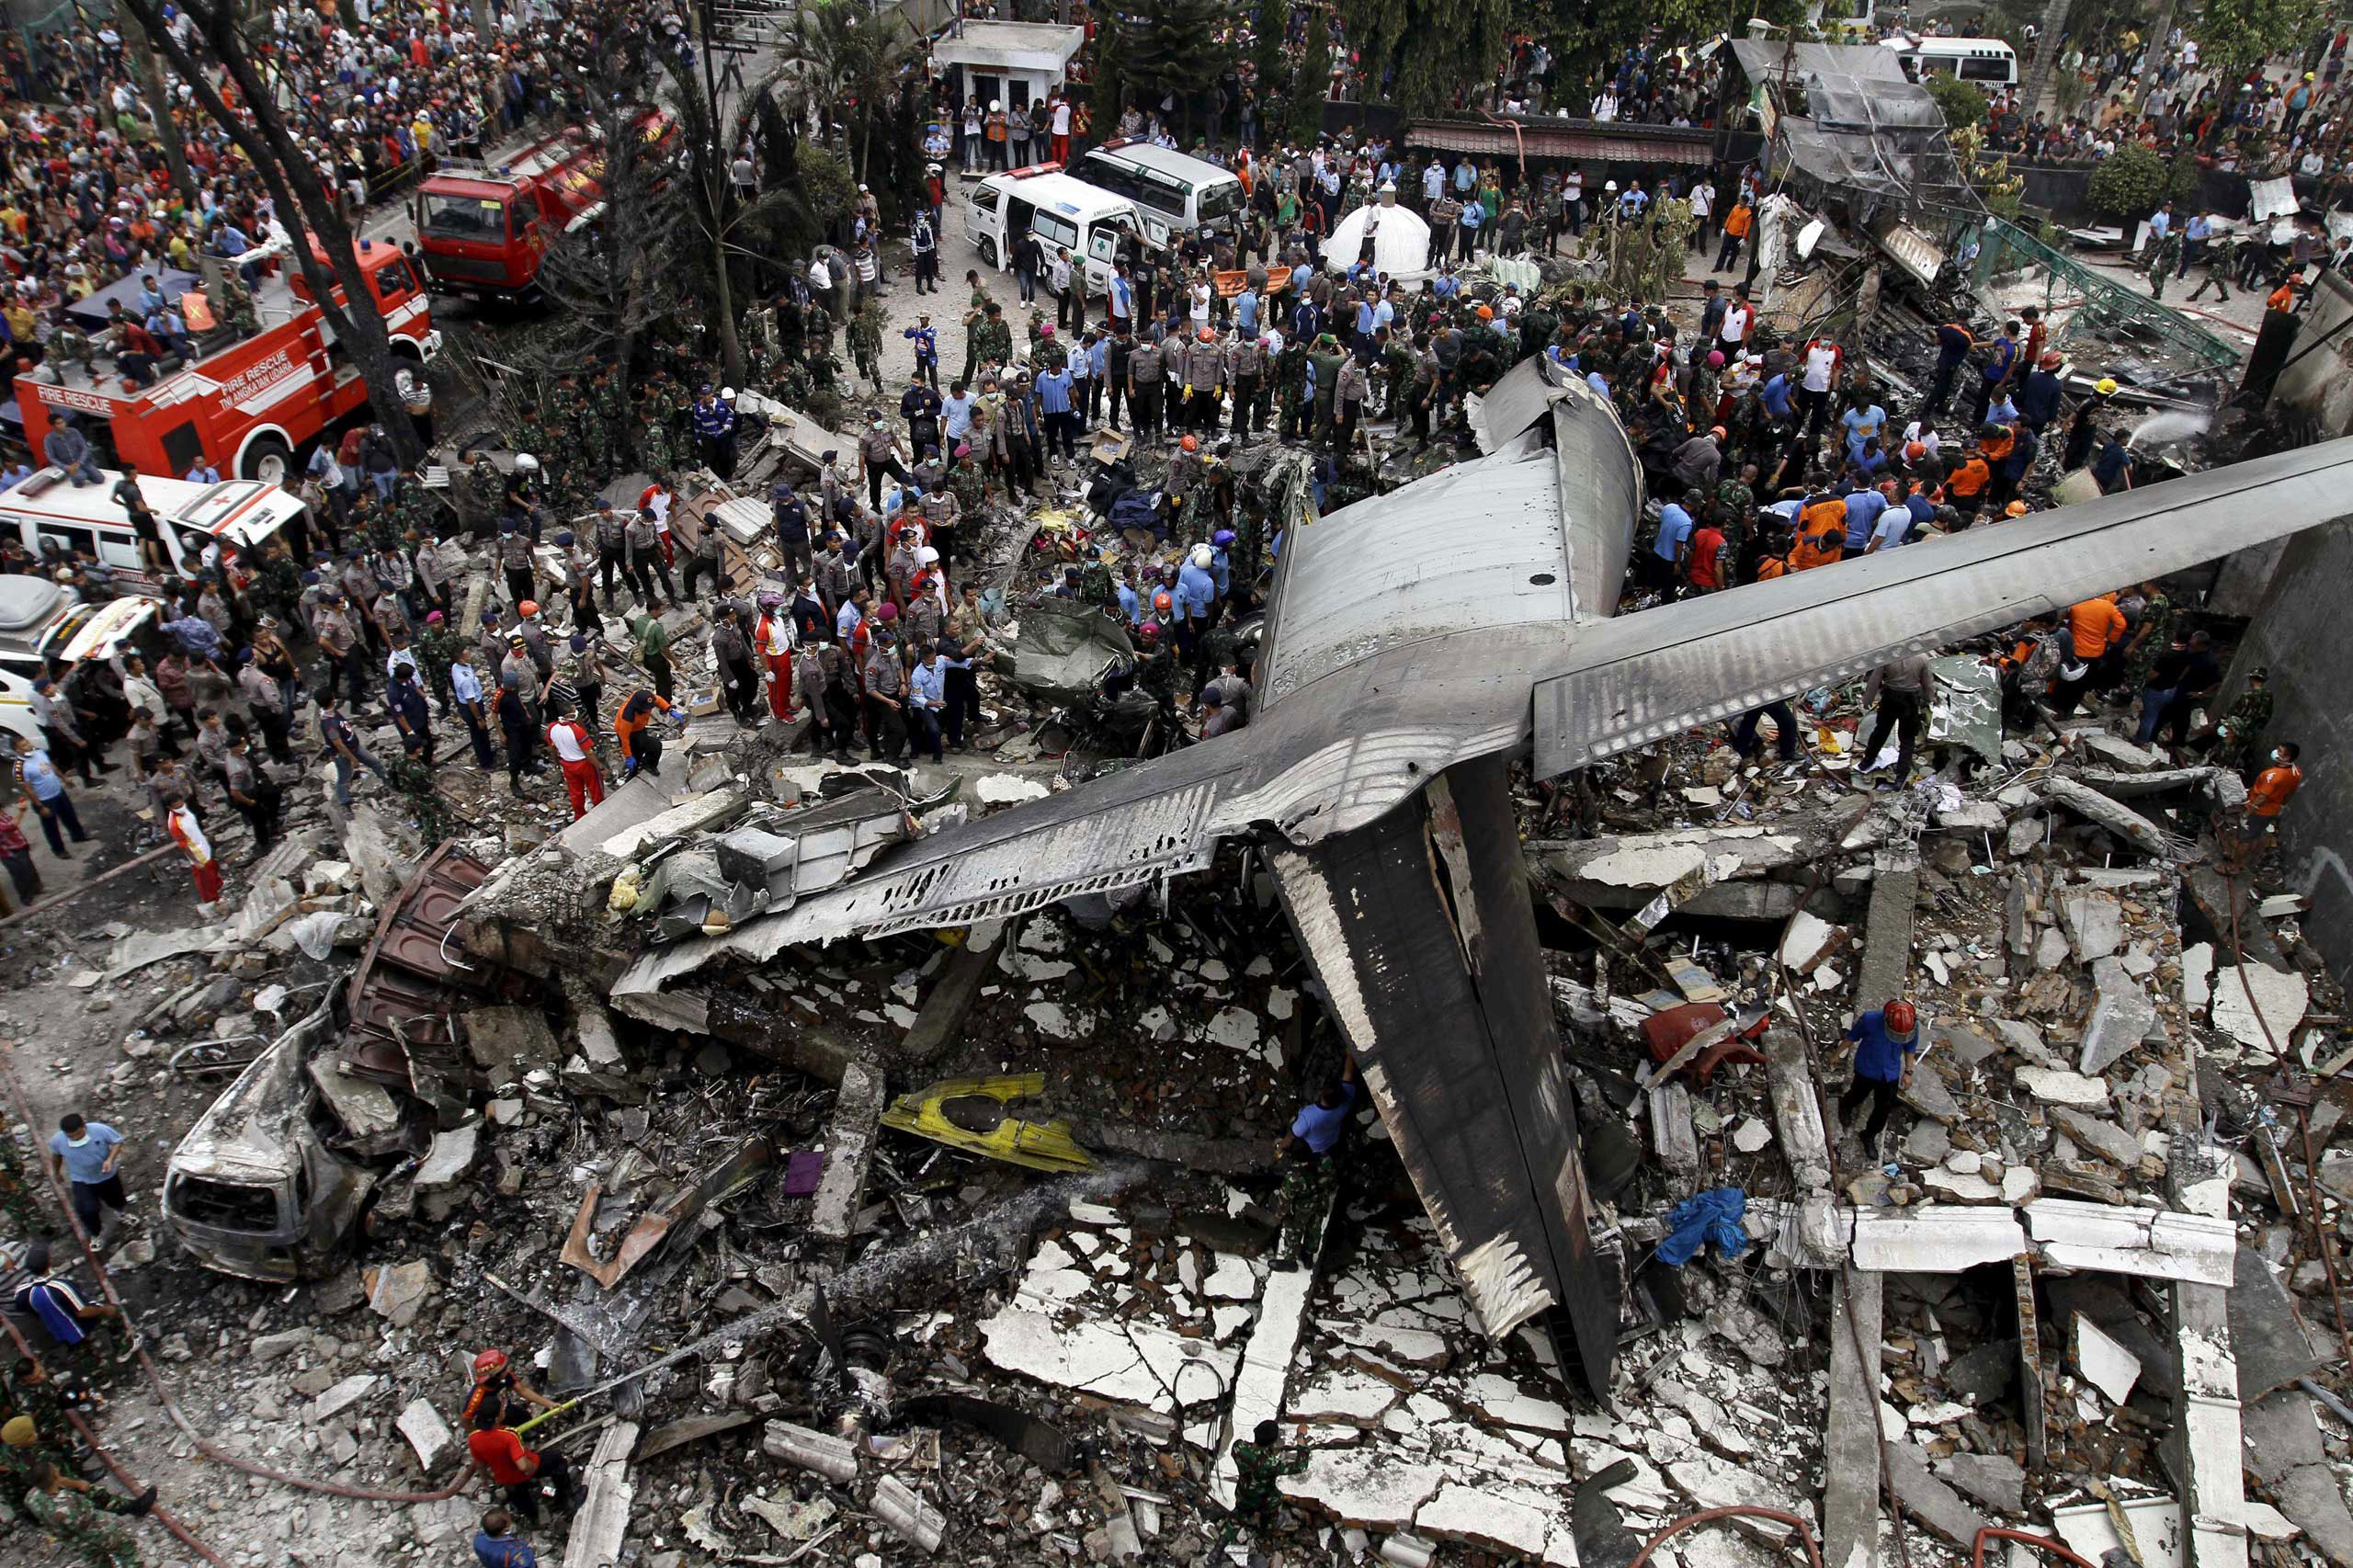 Security forces and rescue teams examine the wreckage of an Indonesian military C-130 Hercules transport plane after it crashed into a residential area in the North Sumatra city of Medan, Indonesia. June 30, 2015. At least 30 people were killed when the military transport plane crashed into a residential area two minutes after take-off in northern Indonesia, putting a fresh spotlight on the country's woeful air safety record.